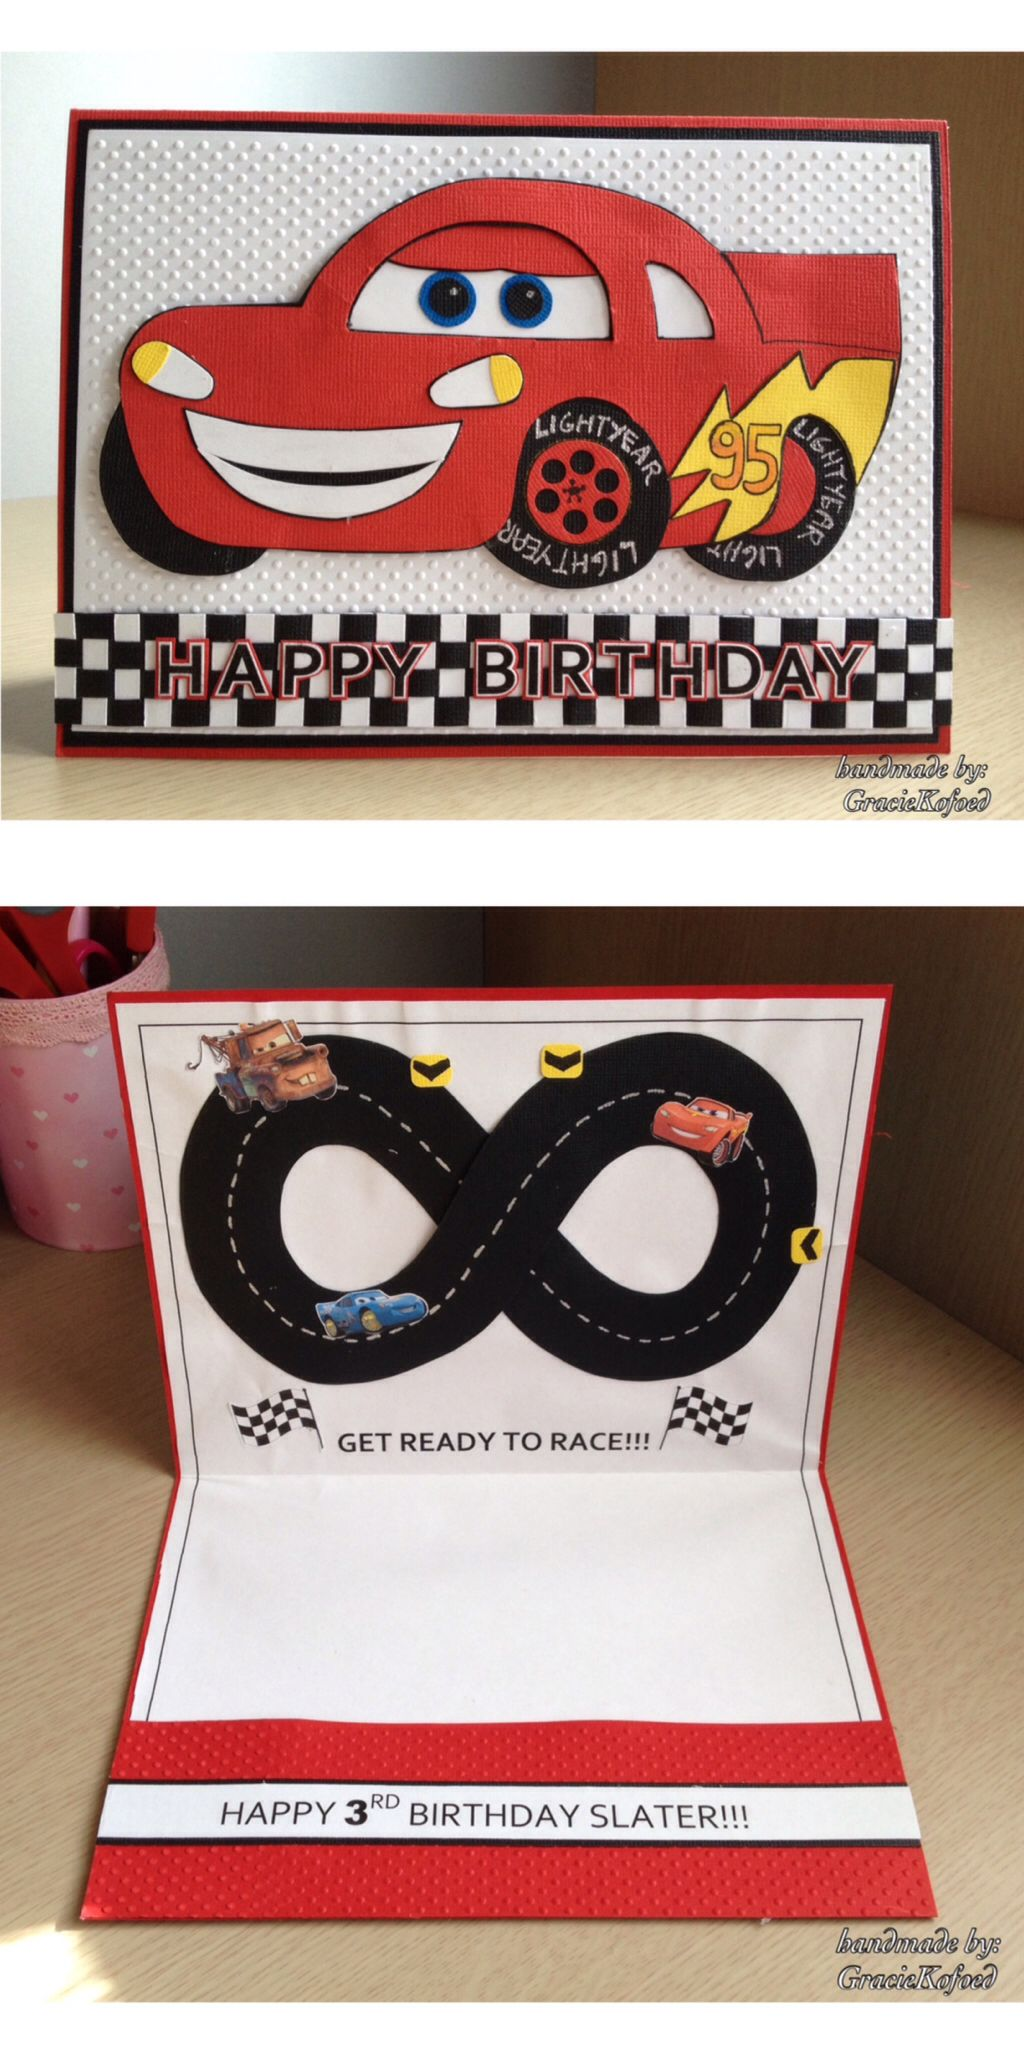 Pixars The Cars Theme Birthday Card By GracieKofoed